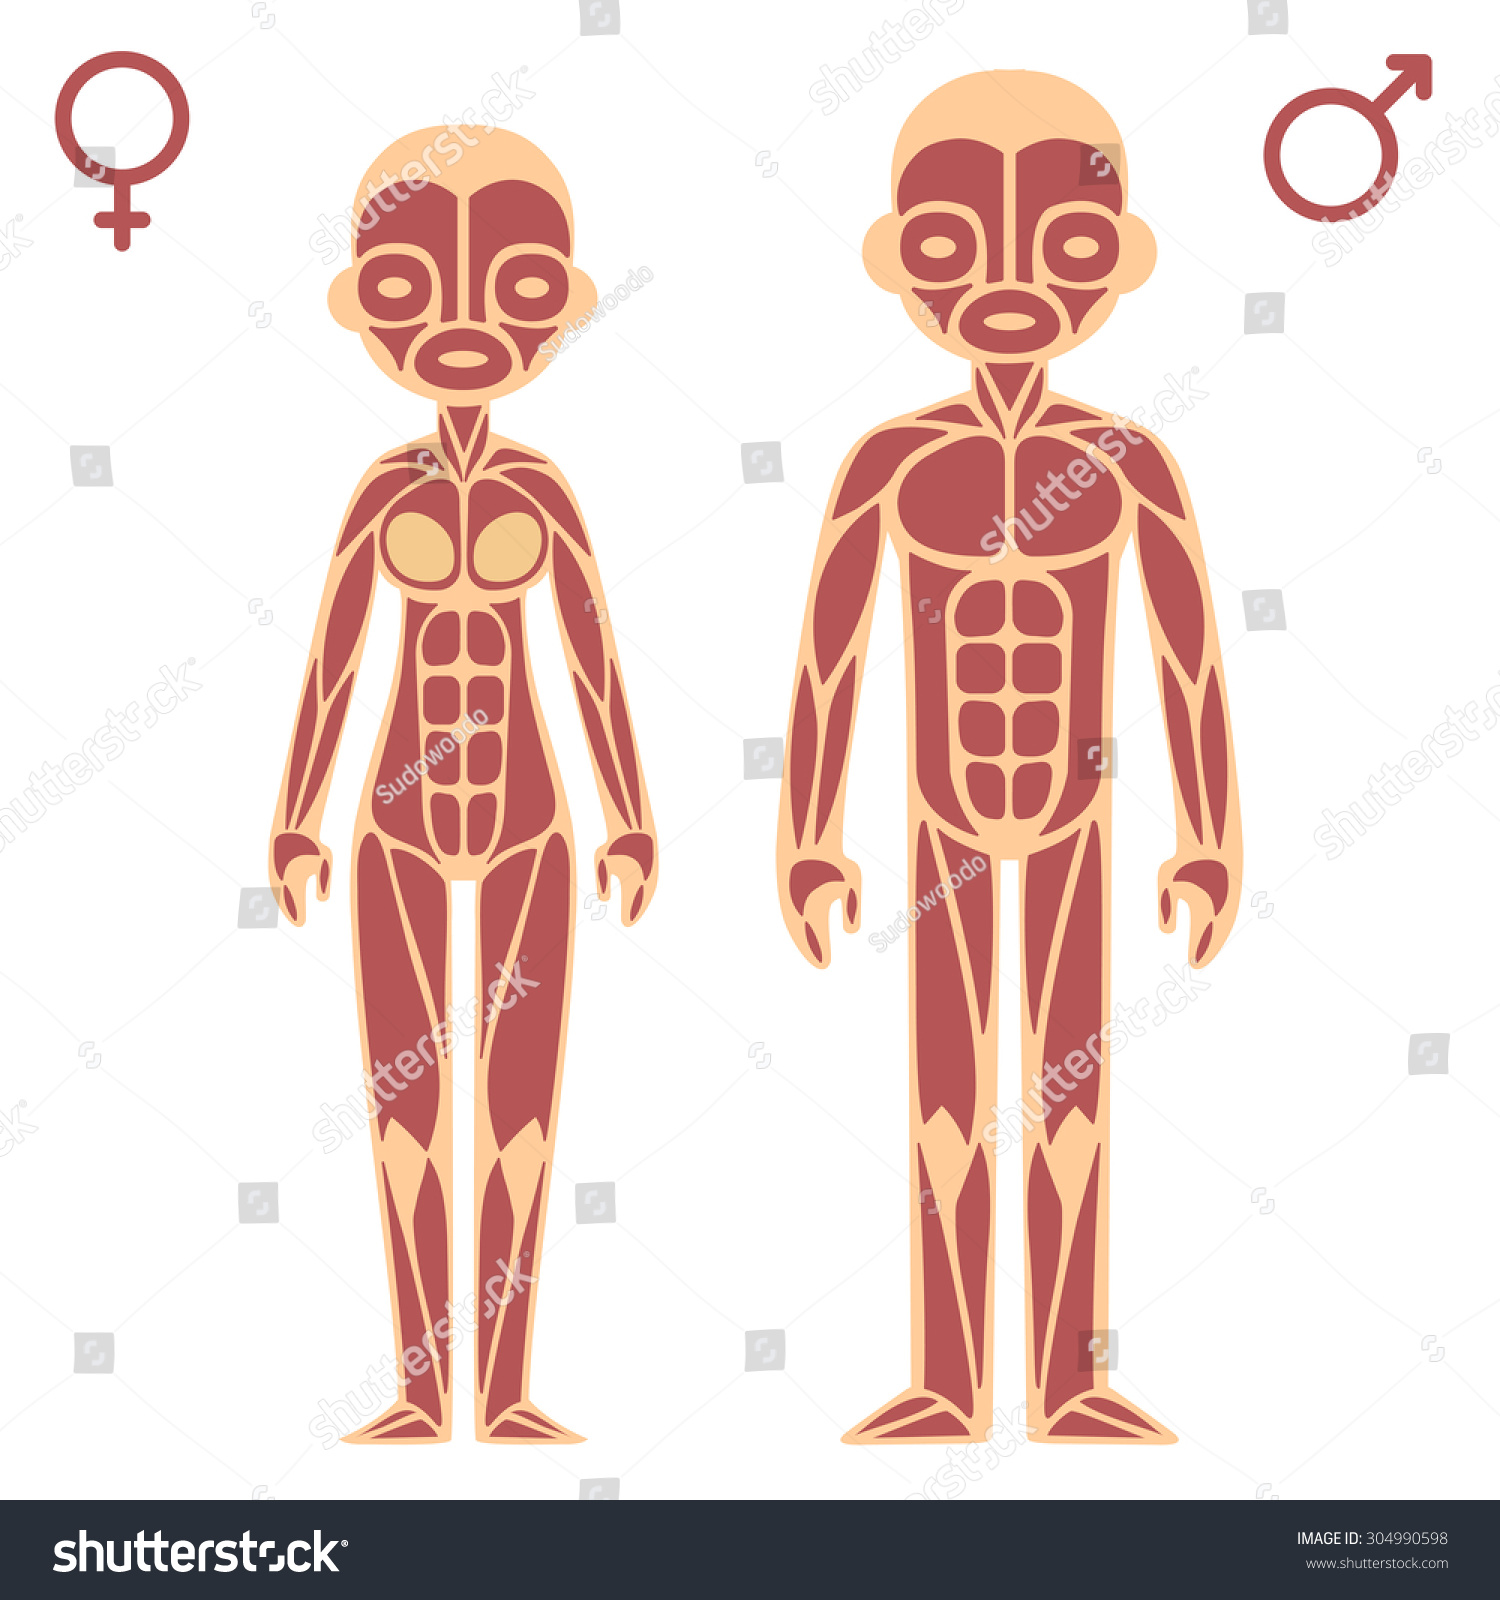 Stylized Cartoon Male Female Muscle Charts Stock Vector (Royalty ...